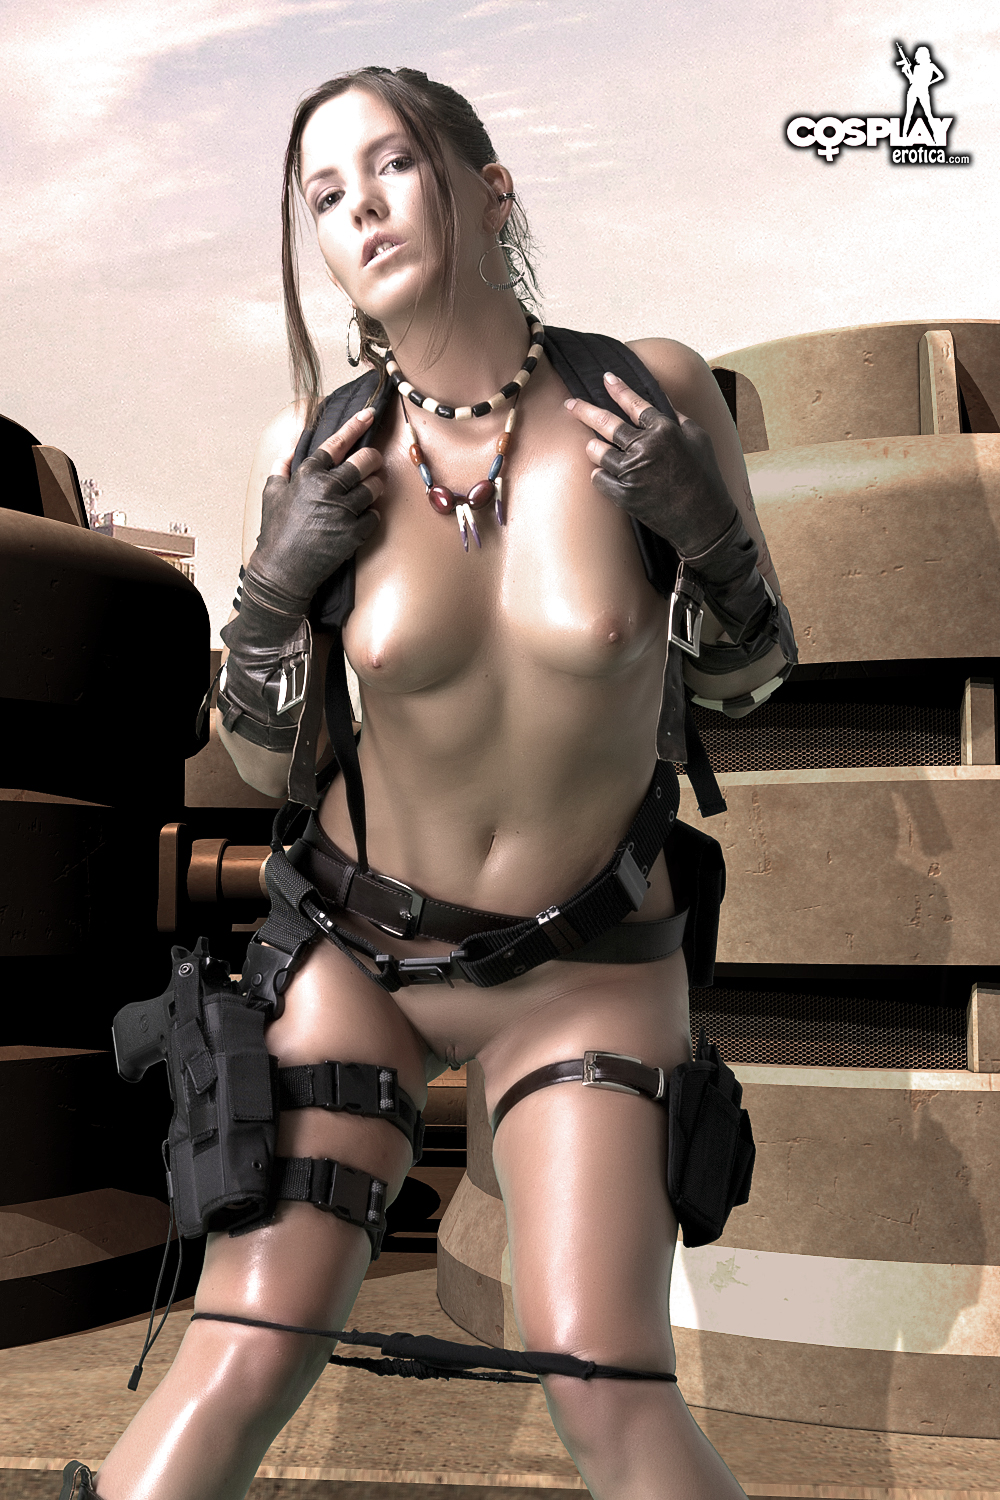 Sheva alomar cosplay erotica sex movie